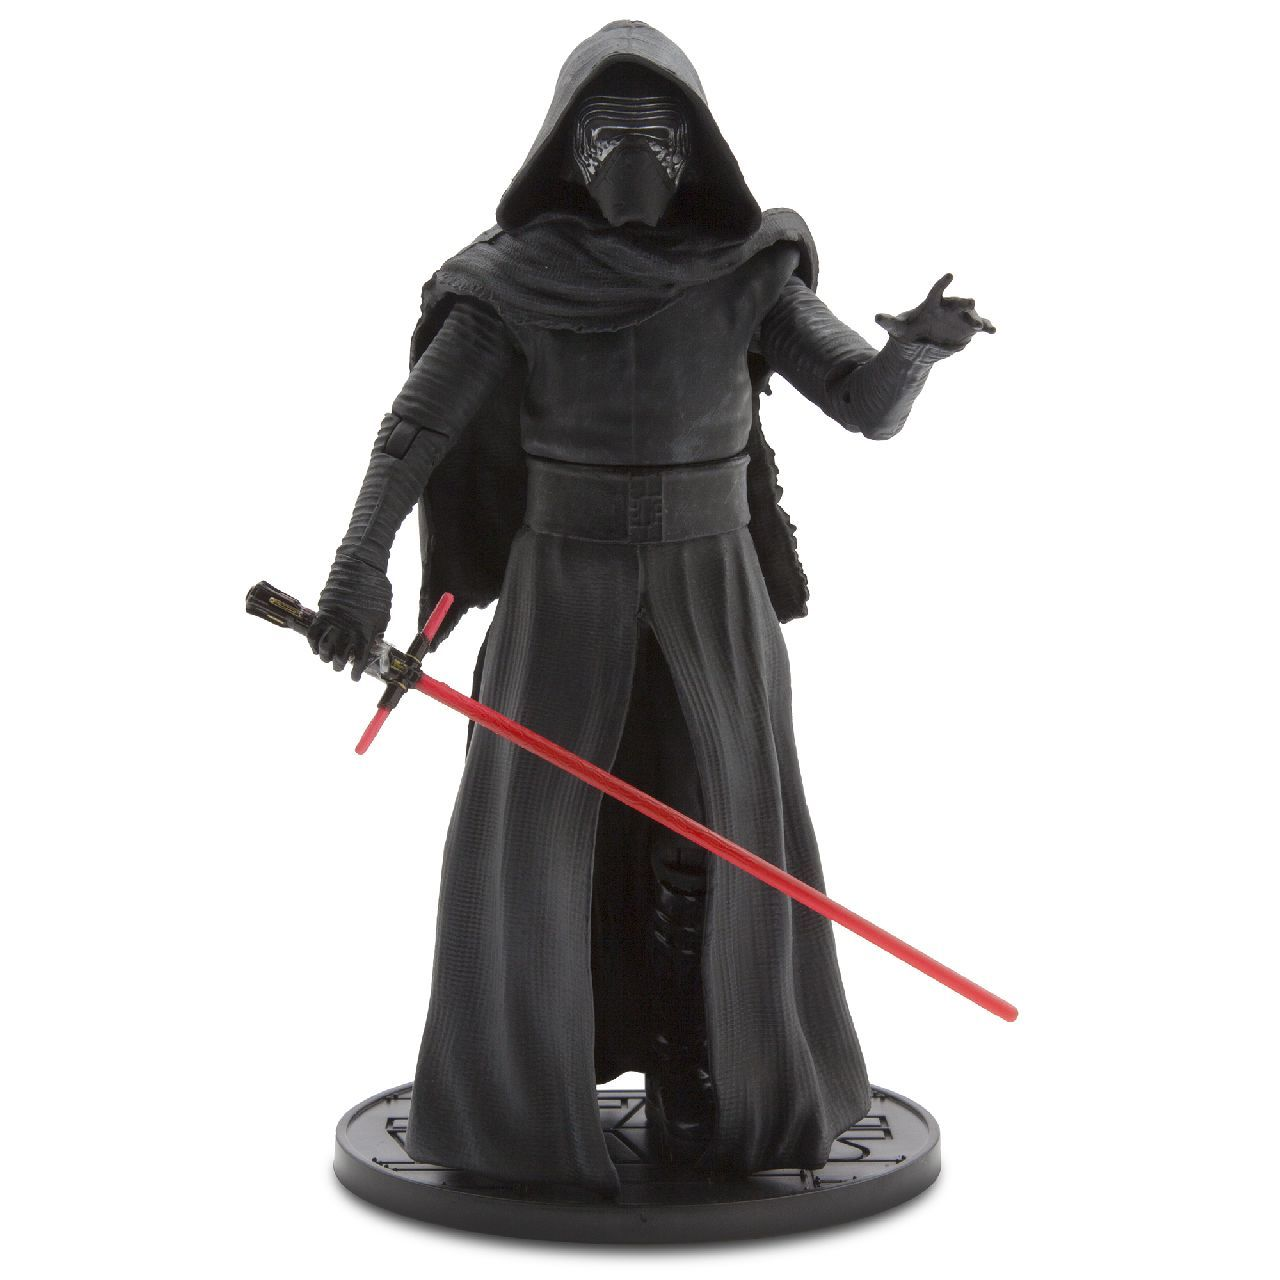 Star Wars: The Force Awakens Toys Revealed